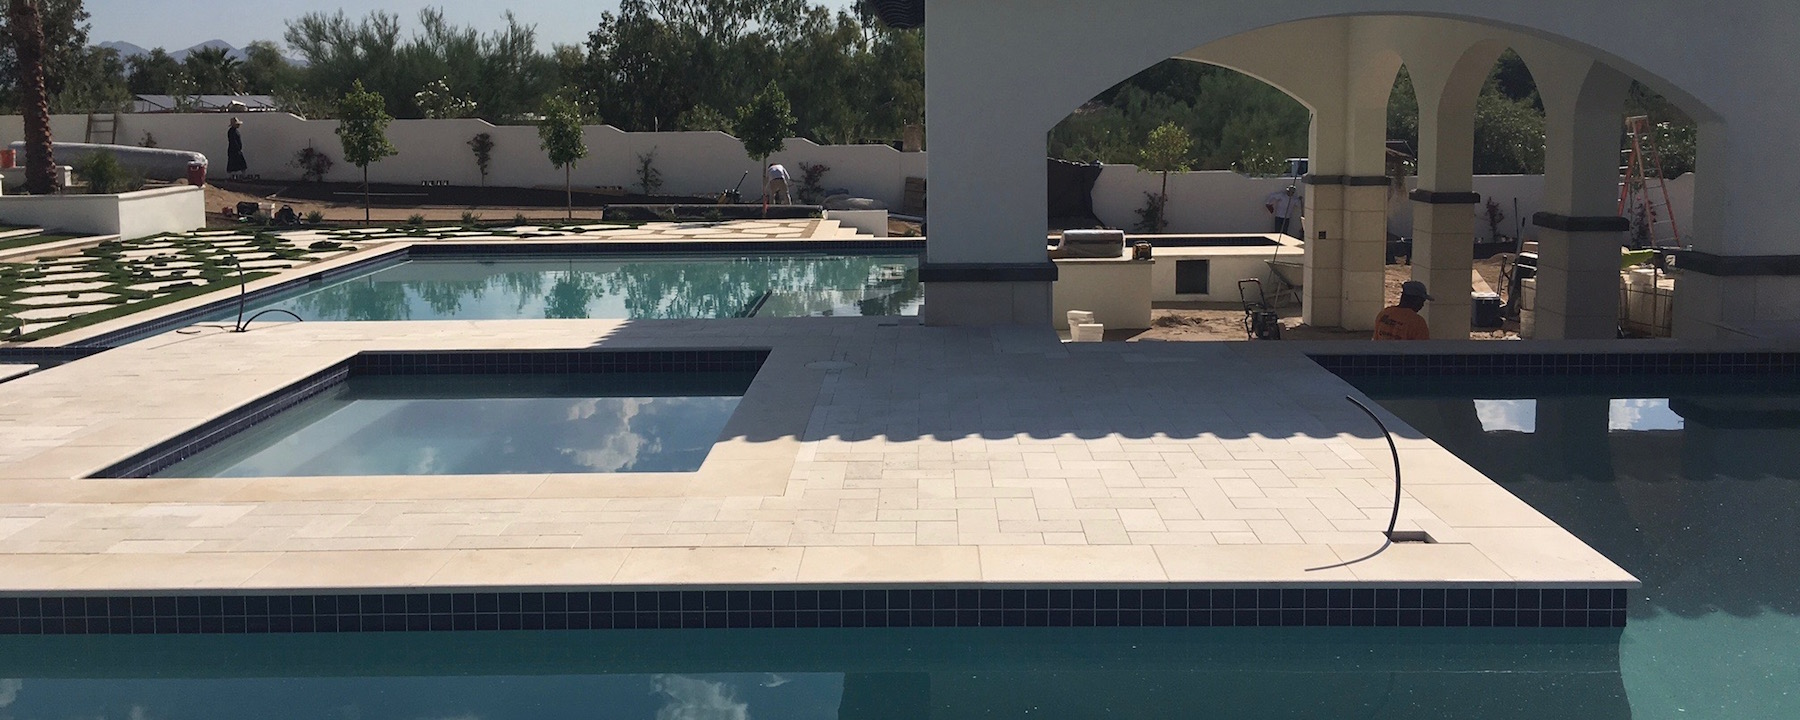 Pavers, Pool Coping, Custom Dark Color Design Accent on Columns, Wall Coping